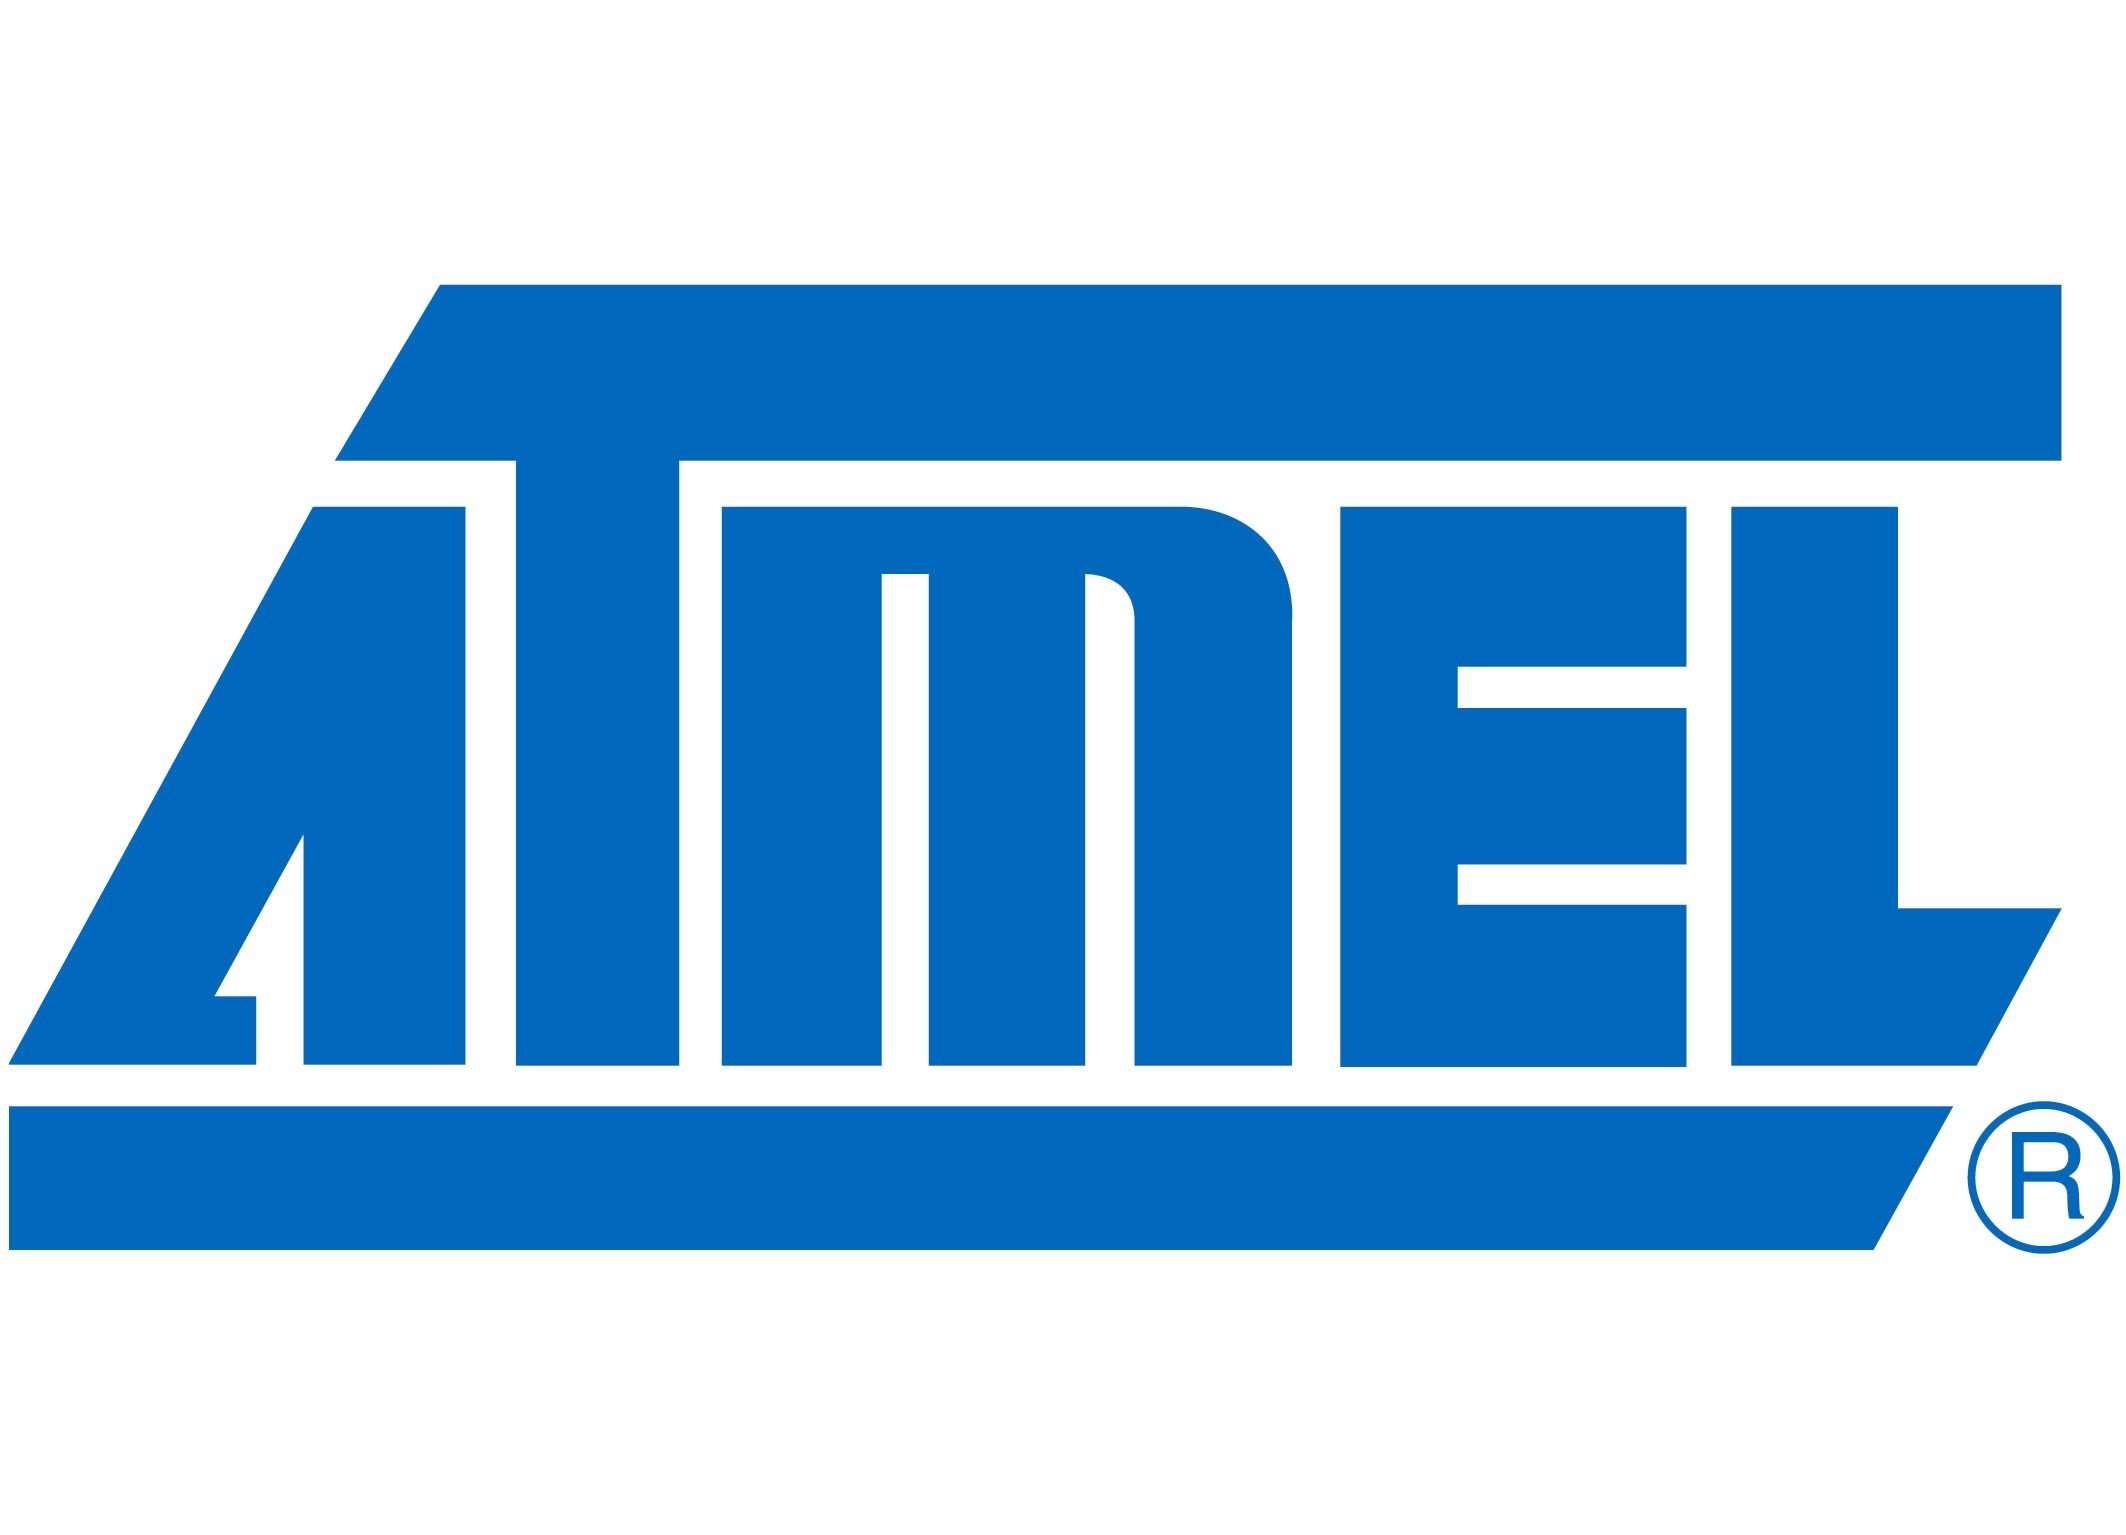 Atmel Co. logo